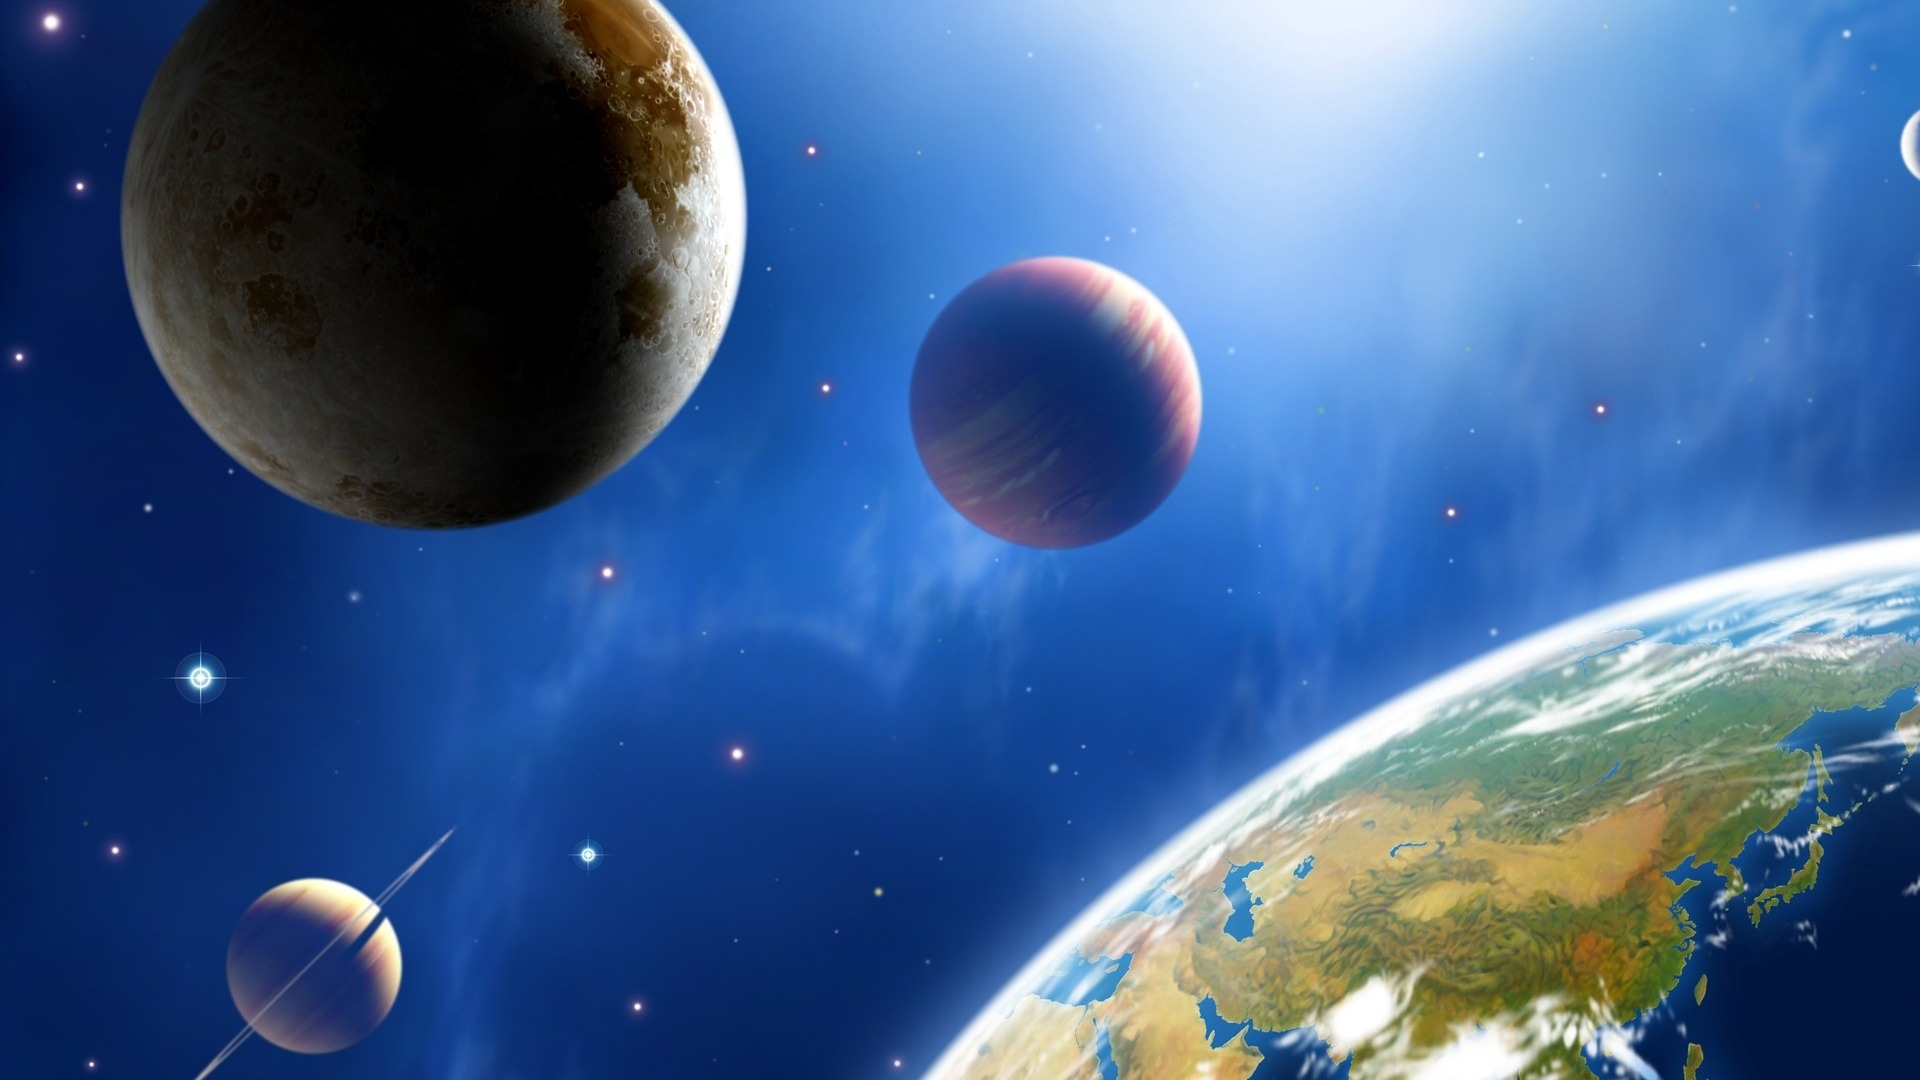 Astronomical Art Blue Earth Planets And Universe Preview